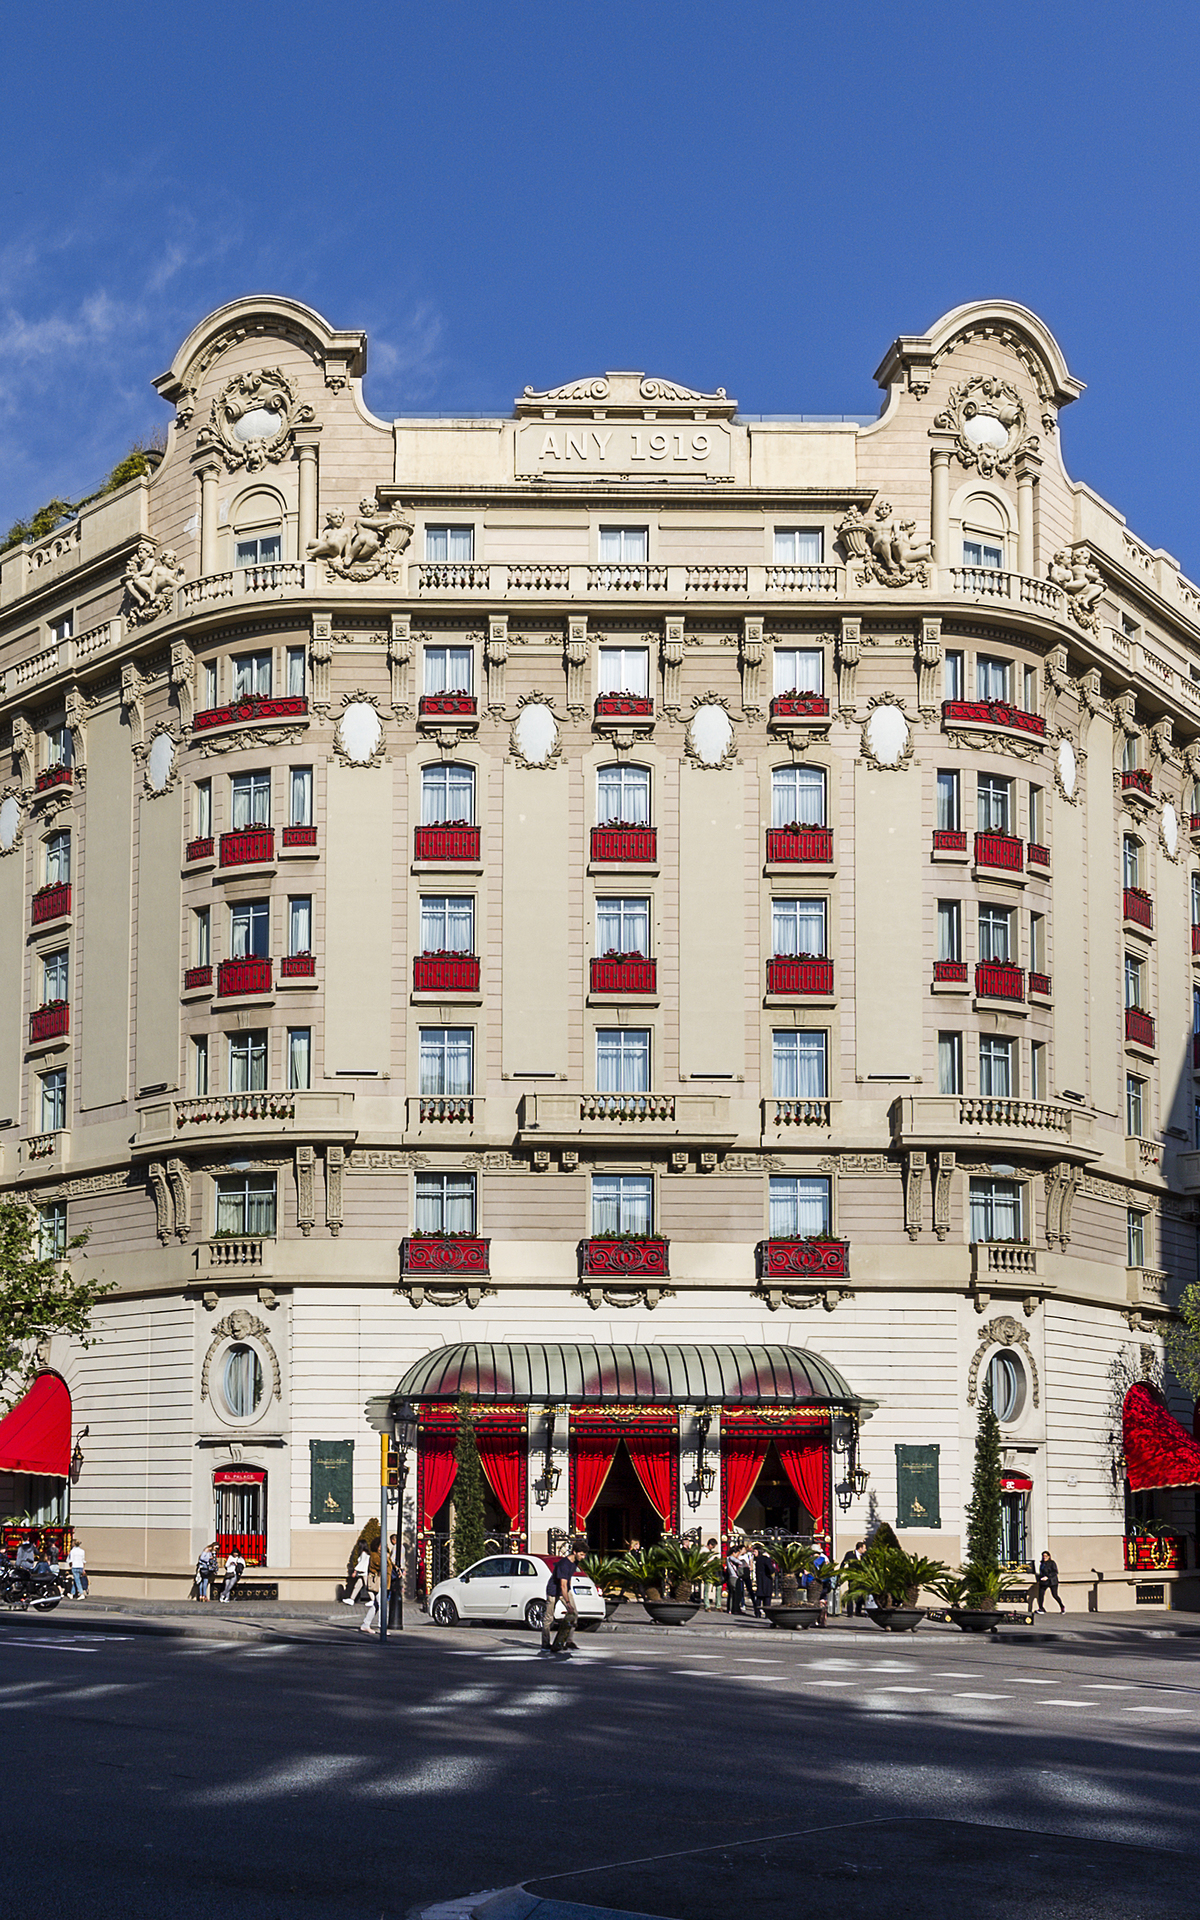 Palace hotel in Barcelona